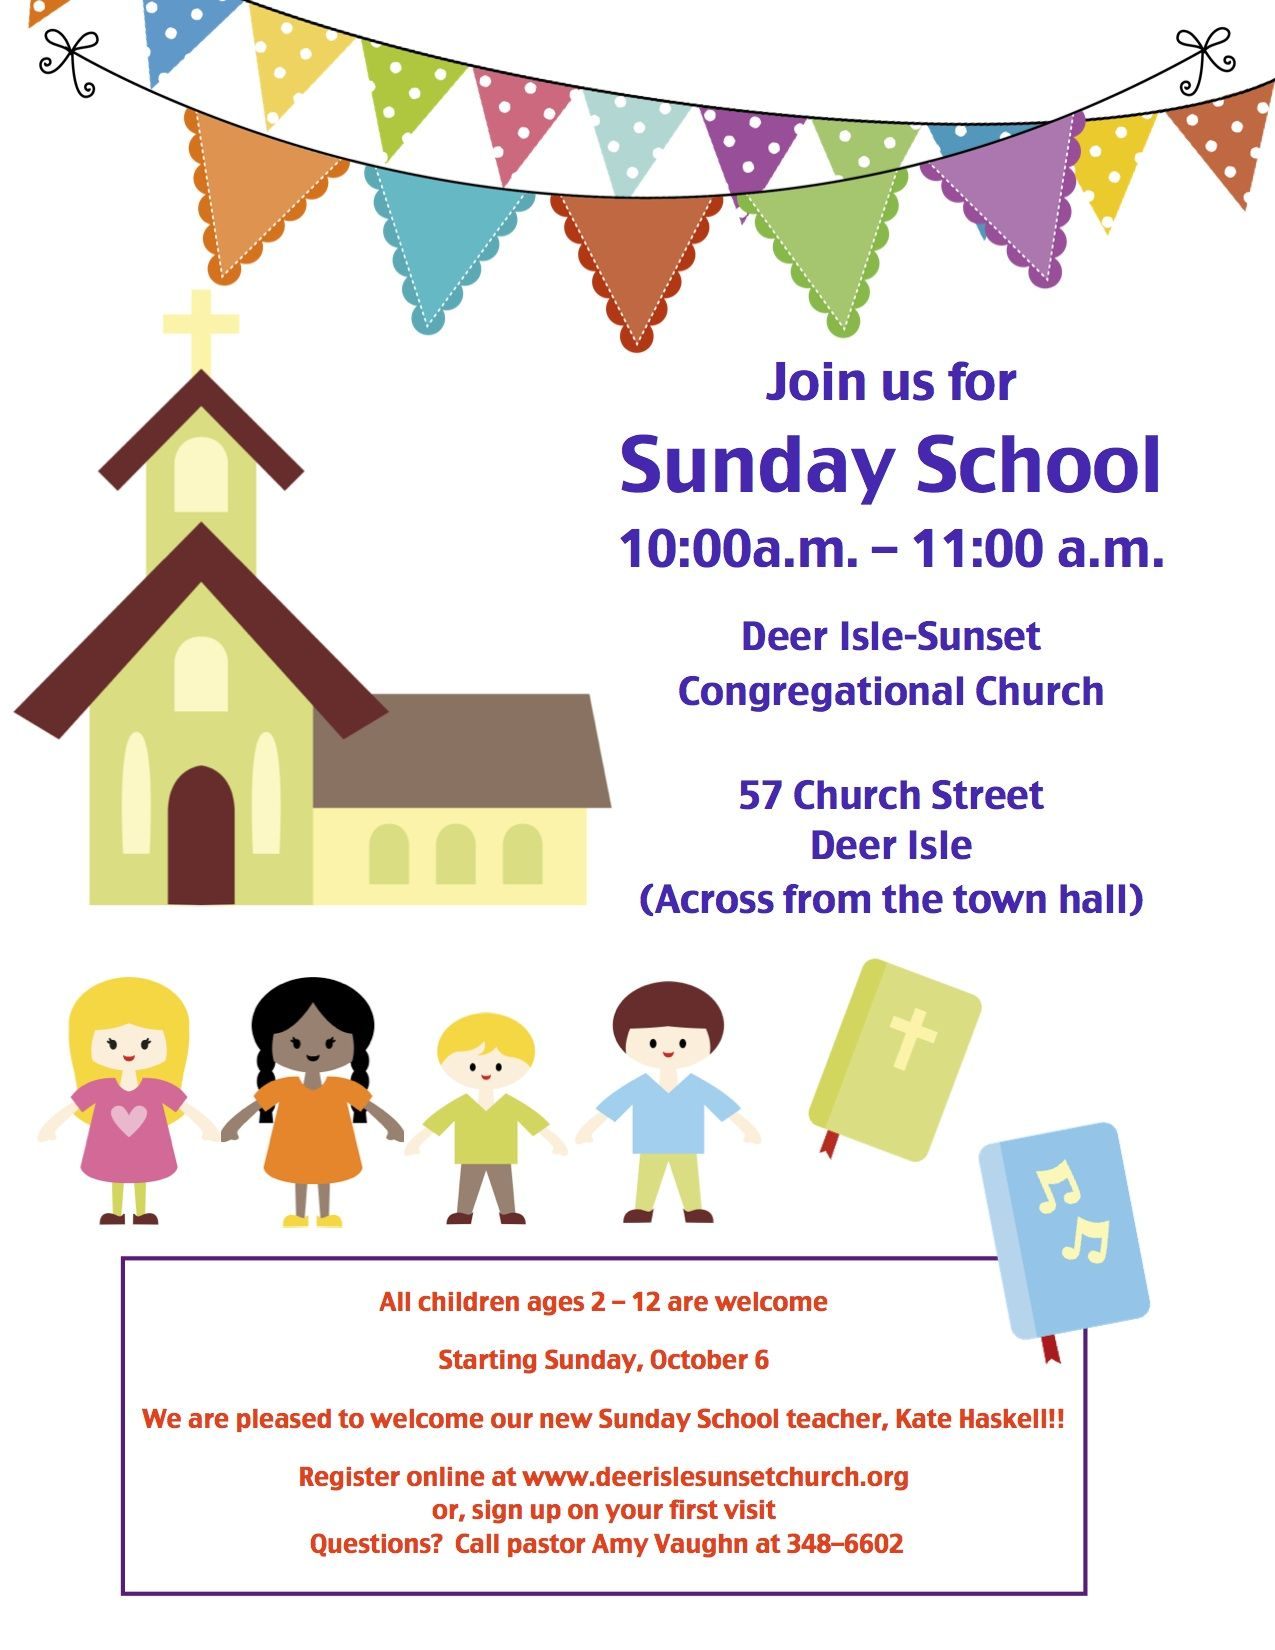 Sunday school invitation flyer google search childrens church sunday school invitation flyer google search yadclub Gallery